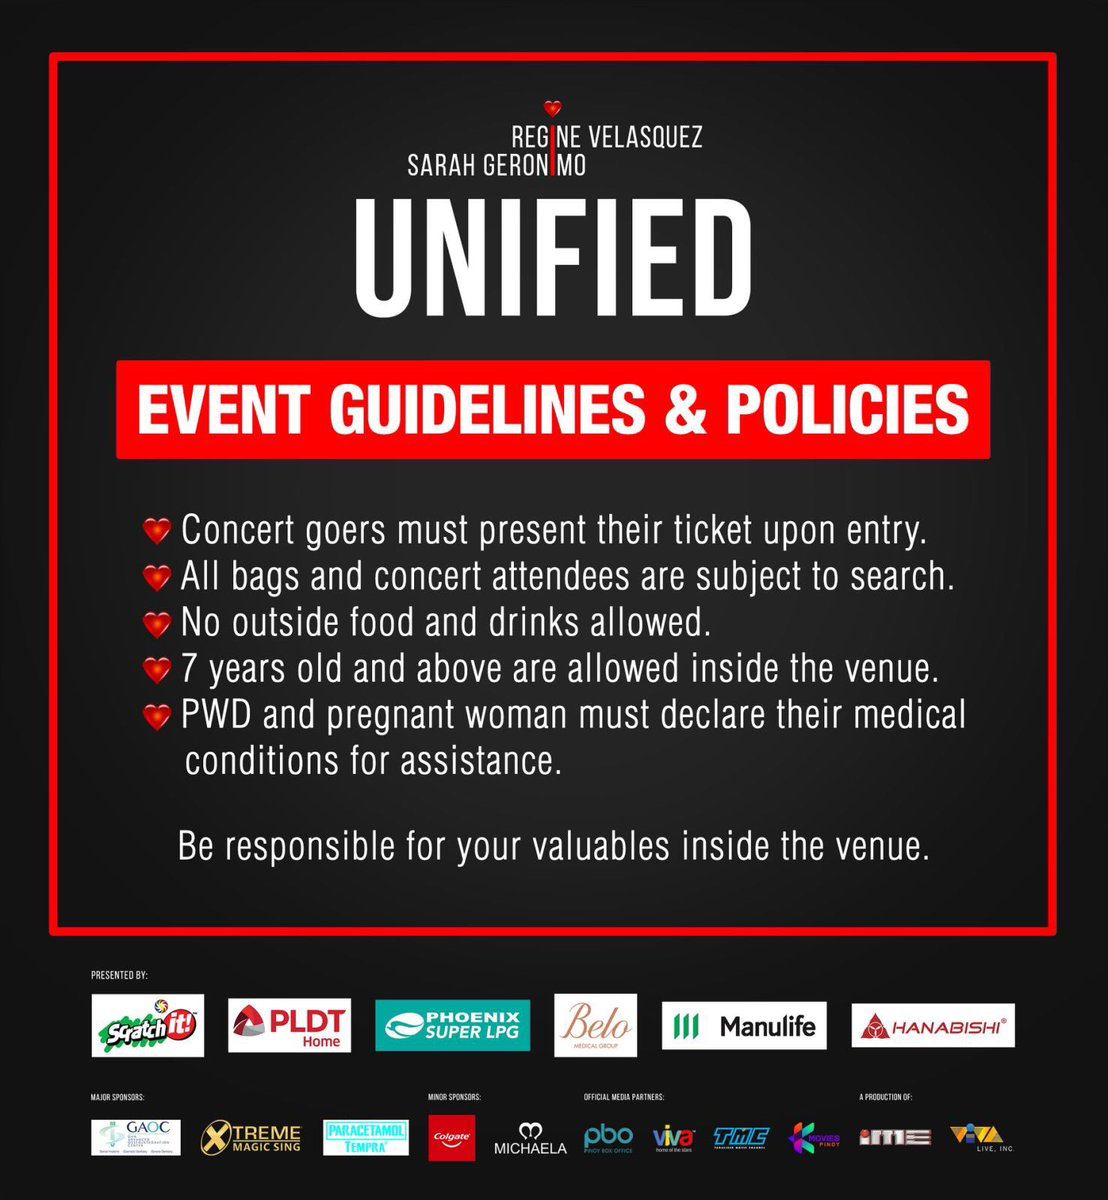 In order to give you the best #Unified experience, here are some of the rules and guidelines that must be followed.  UNIFIED: Regine Velasquez and Sarah Geronimo February 14 & 15, 2020 | 8PM | SMART ARANETA COLISEUM